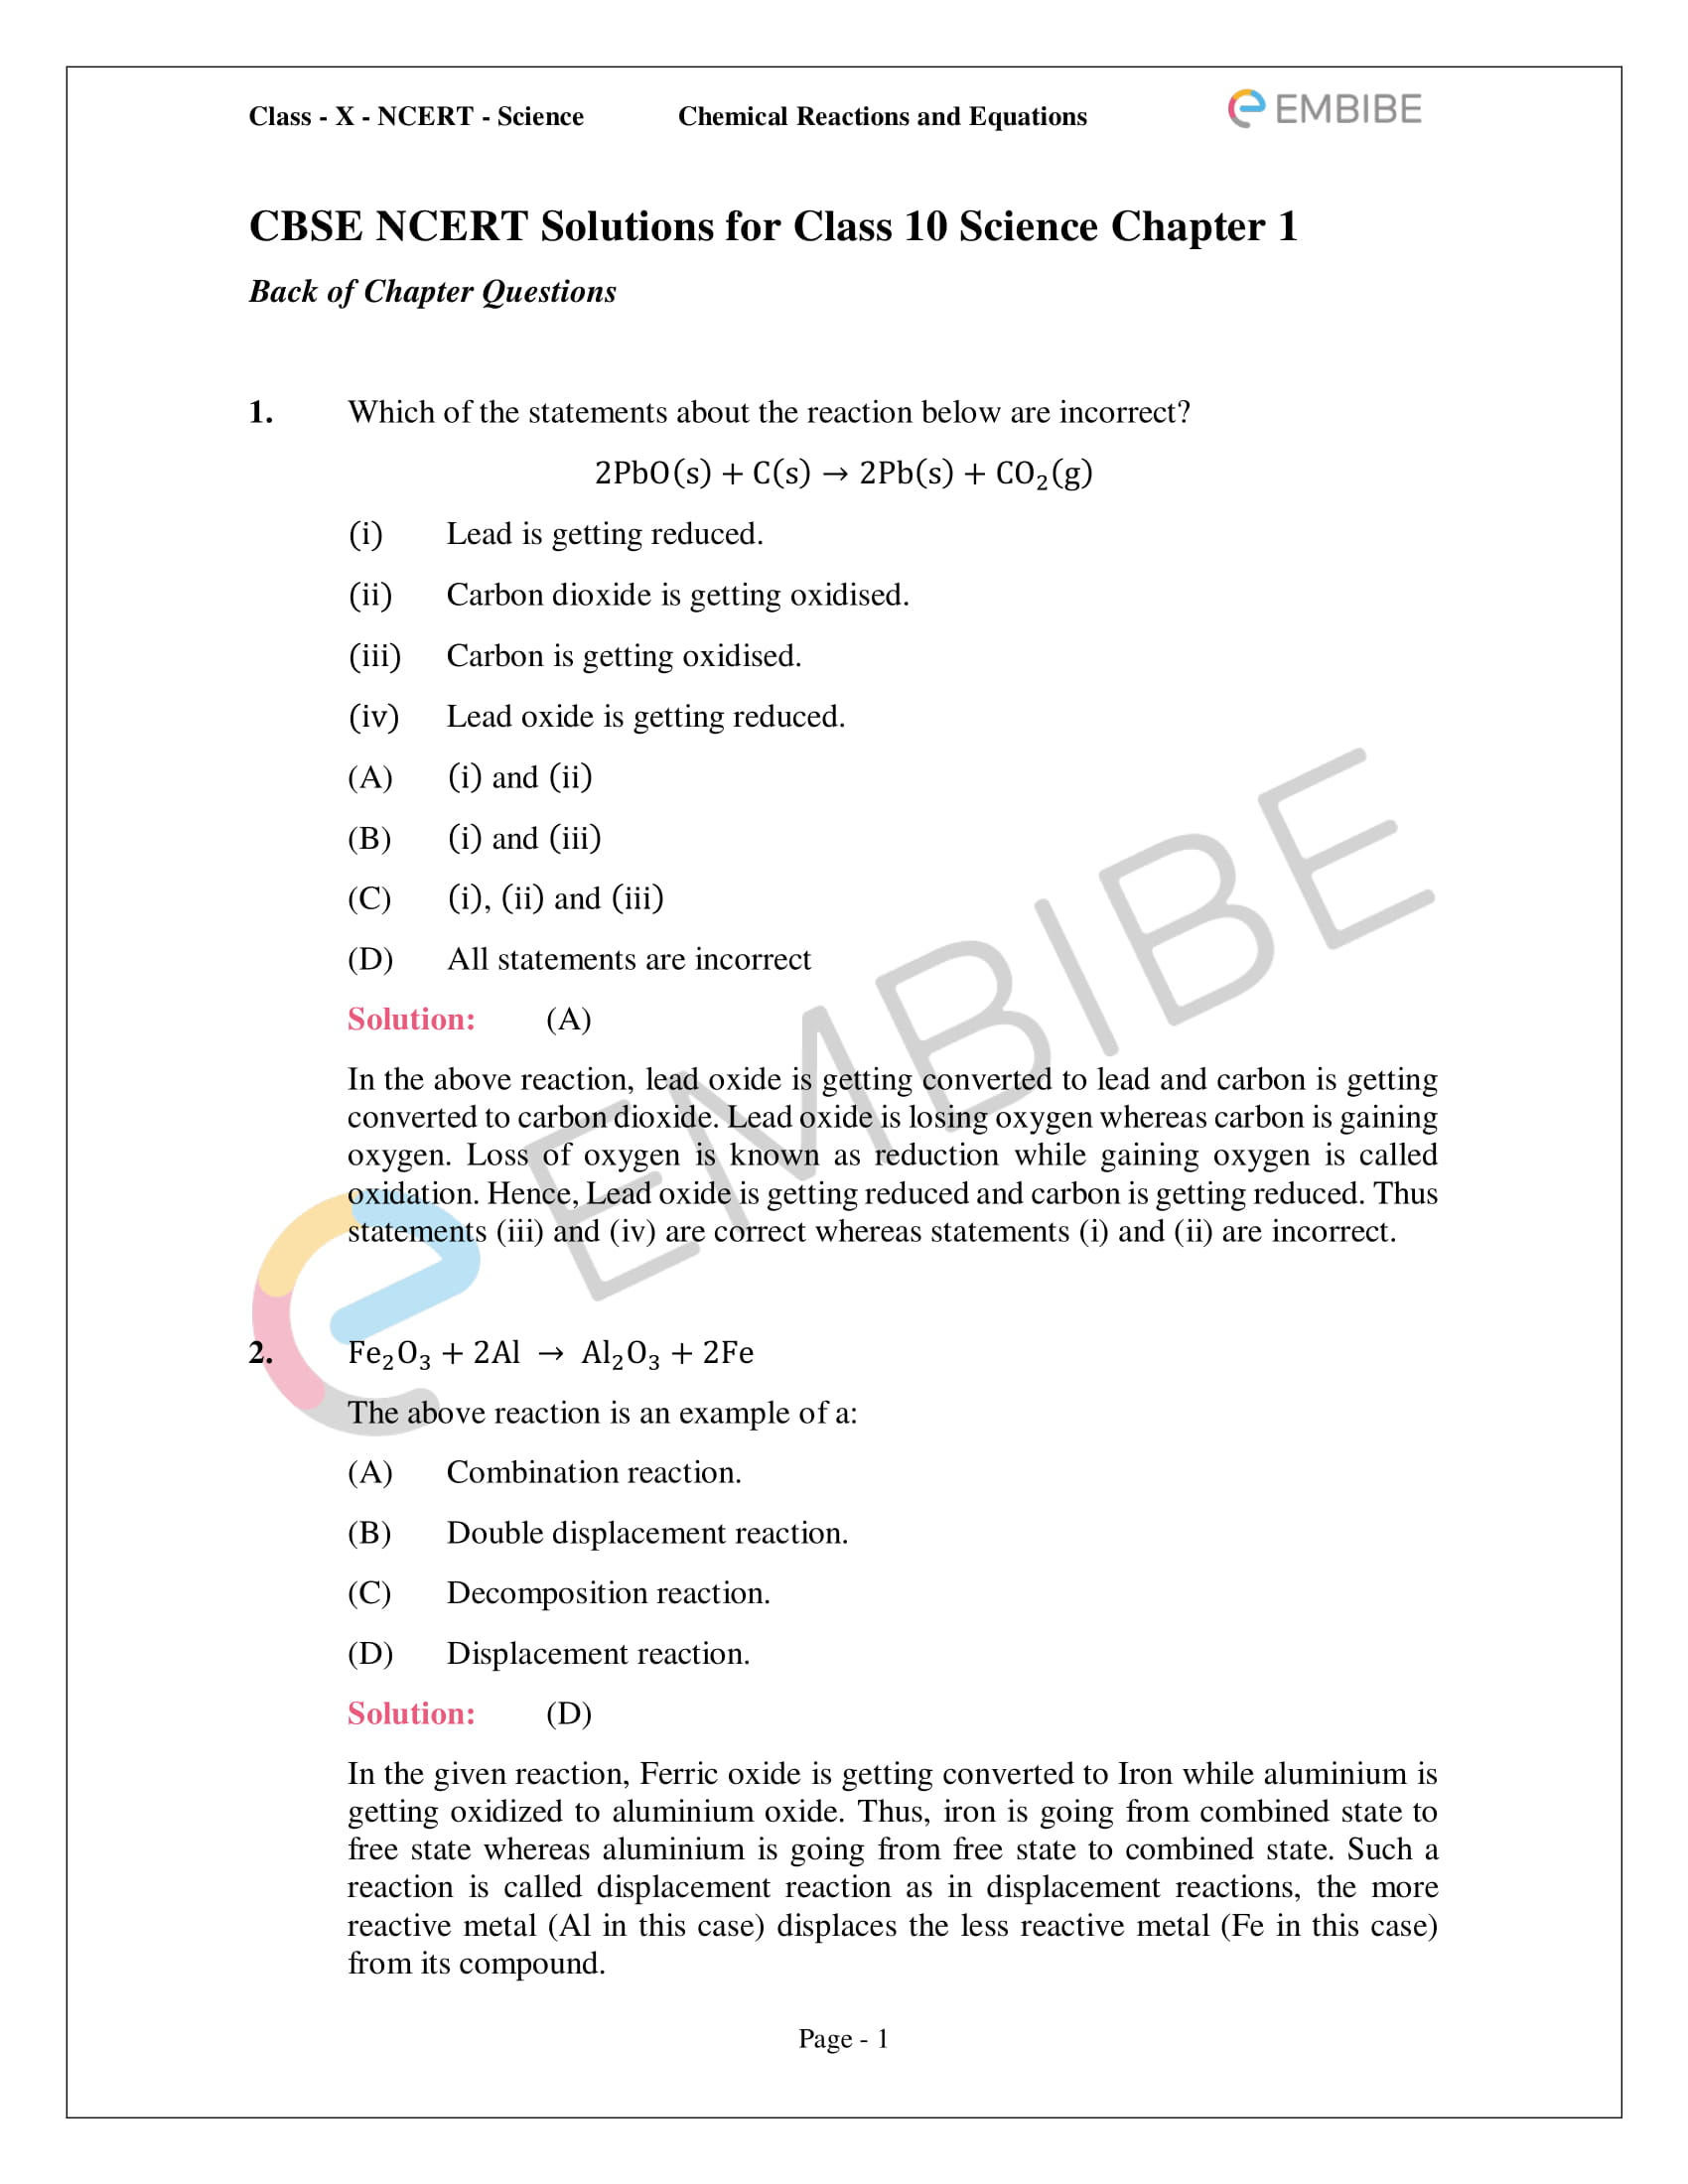 Ncert Solutions For Class 10 Science Chapter 1 Pdf Chemical - Online Test For Chemical Reactions And Equations